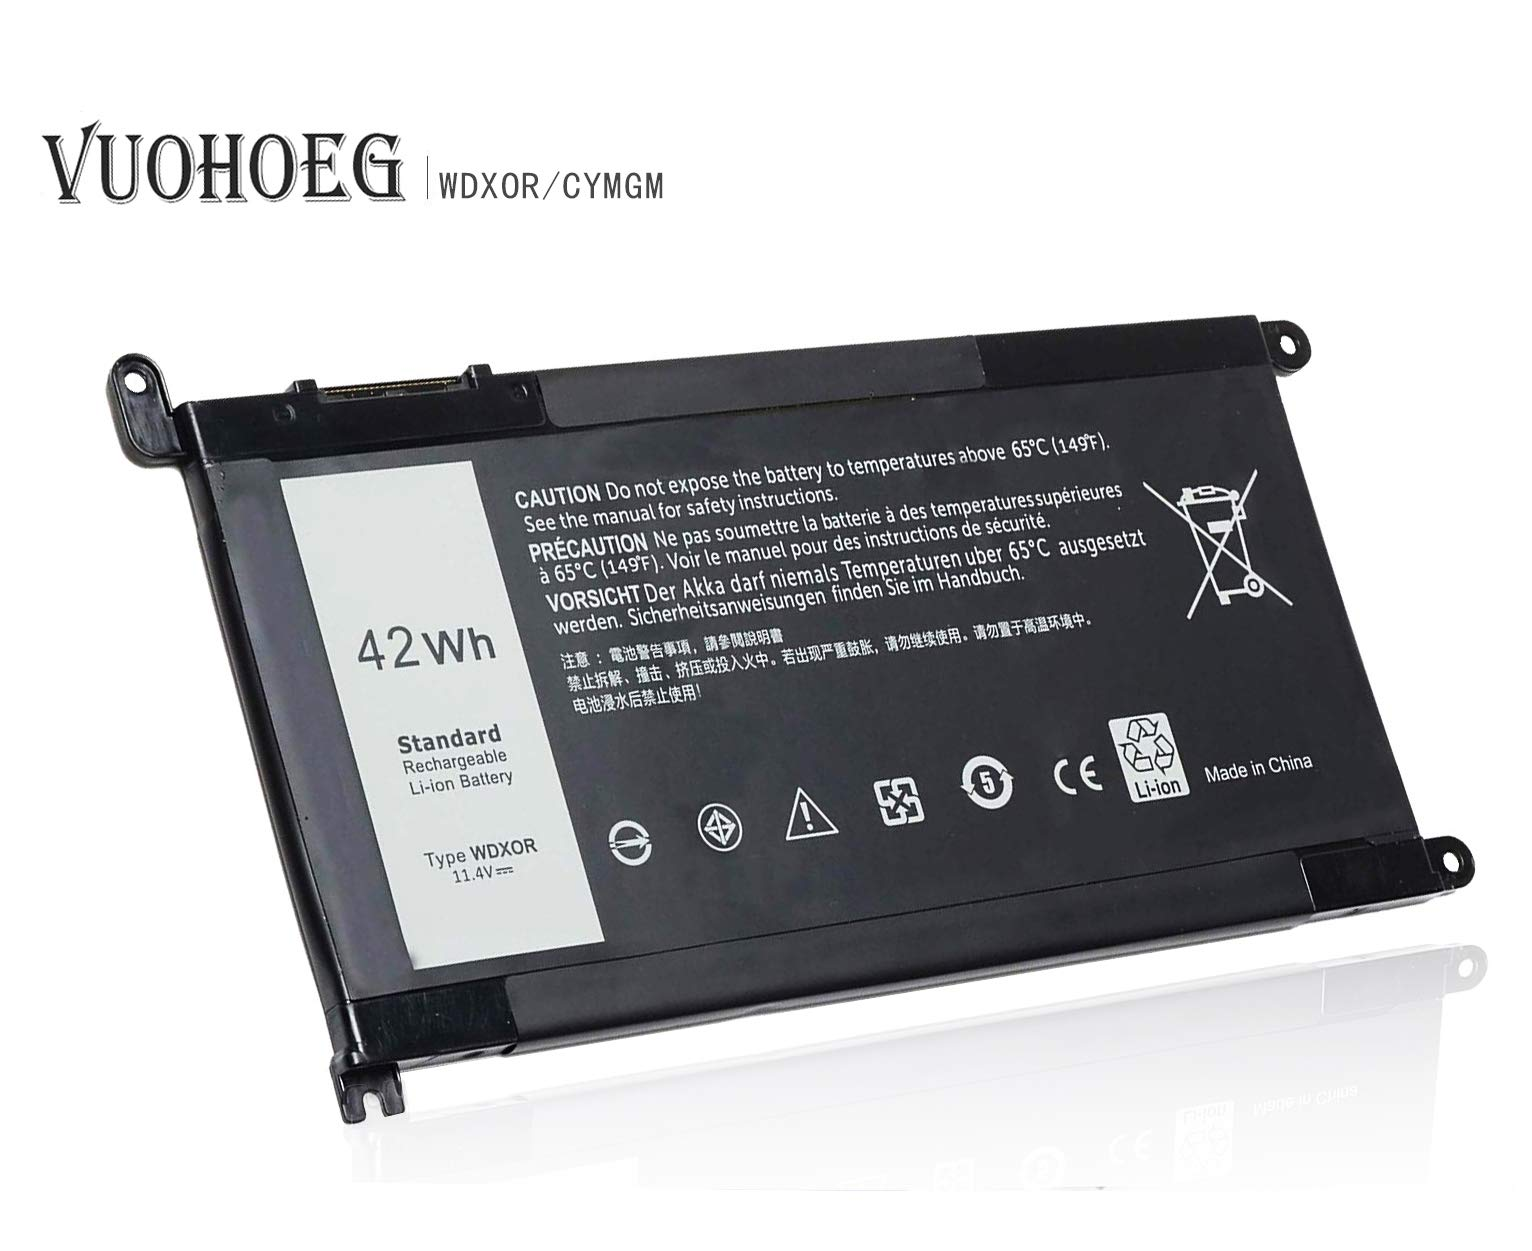 WDXOR WDX0R New Laptop Battery for Dell Inspiron 13 5368 5378 5379 7368 7378; Inspiron 14-7460 15 5565 5567 5568 5578 7560 7570 7579 7569 P58F; Inspiron 17 5765 5767;P/N:FC92N 3CRH3 T2JX4 CYMGM